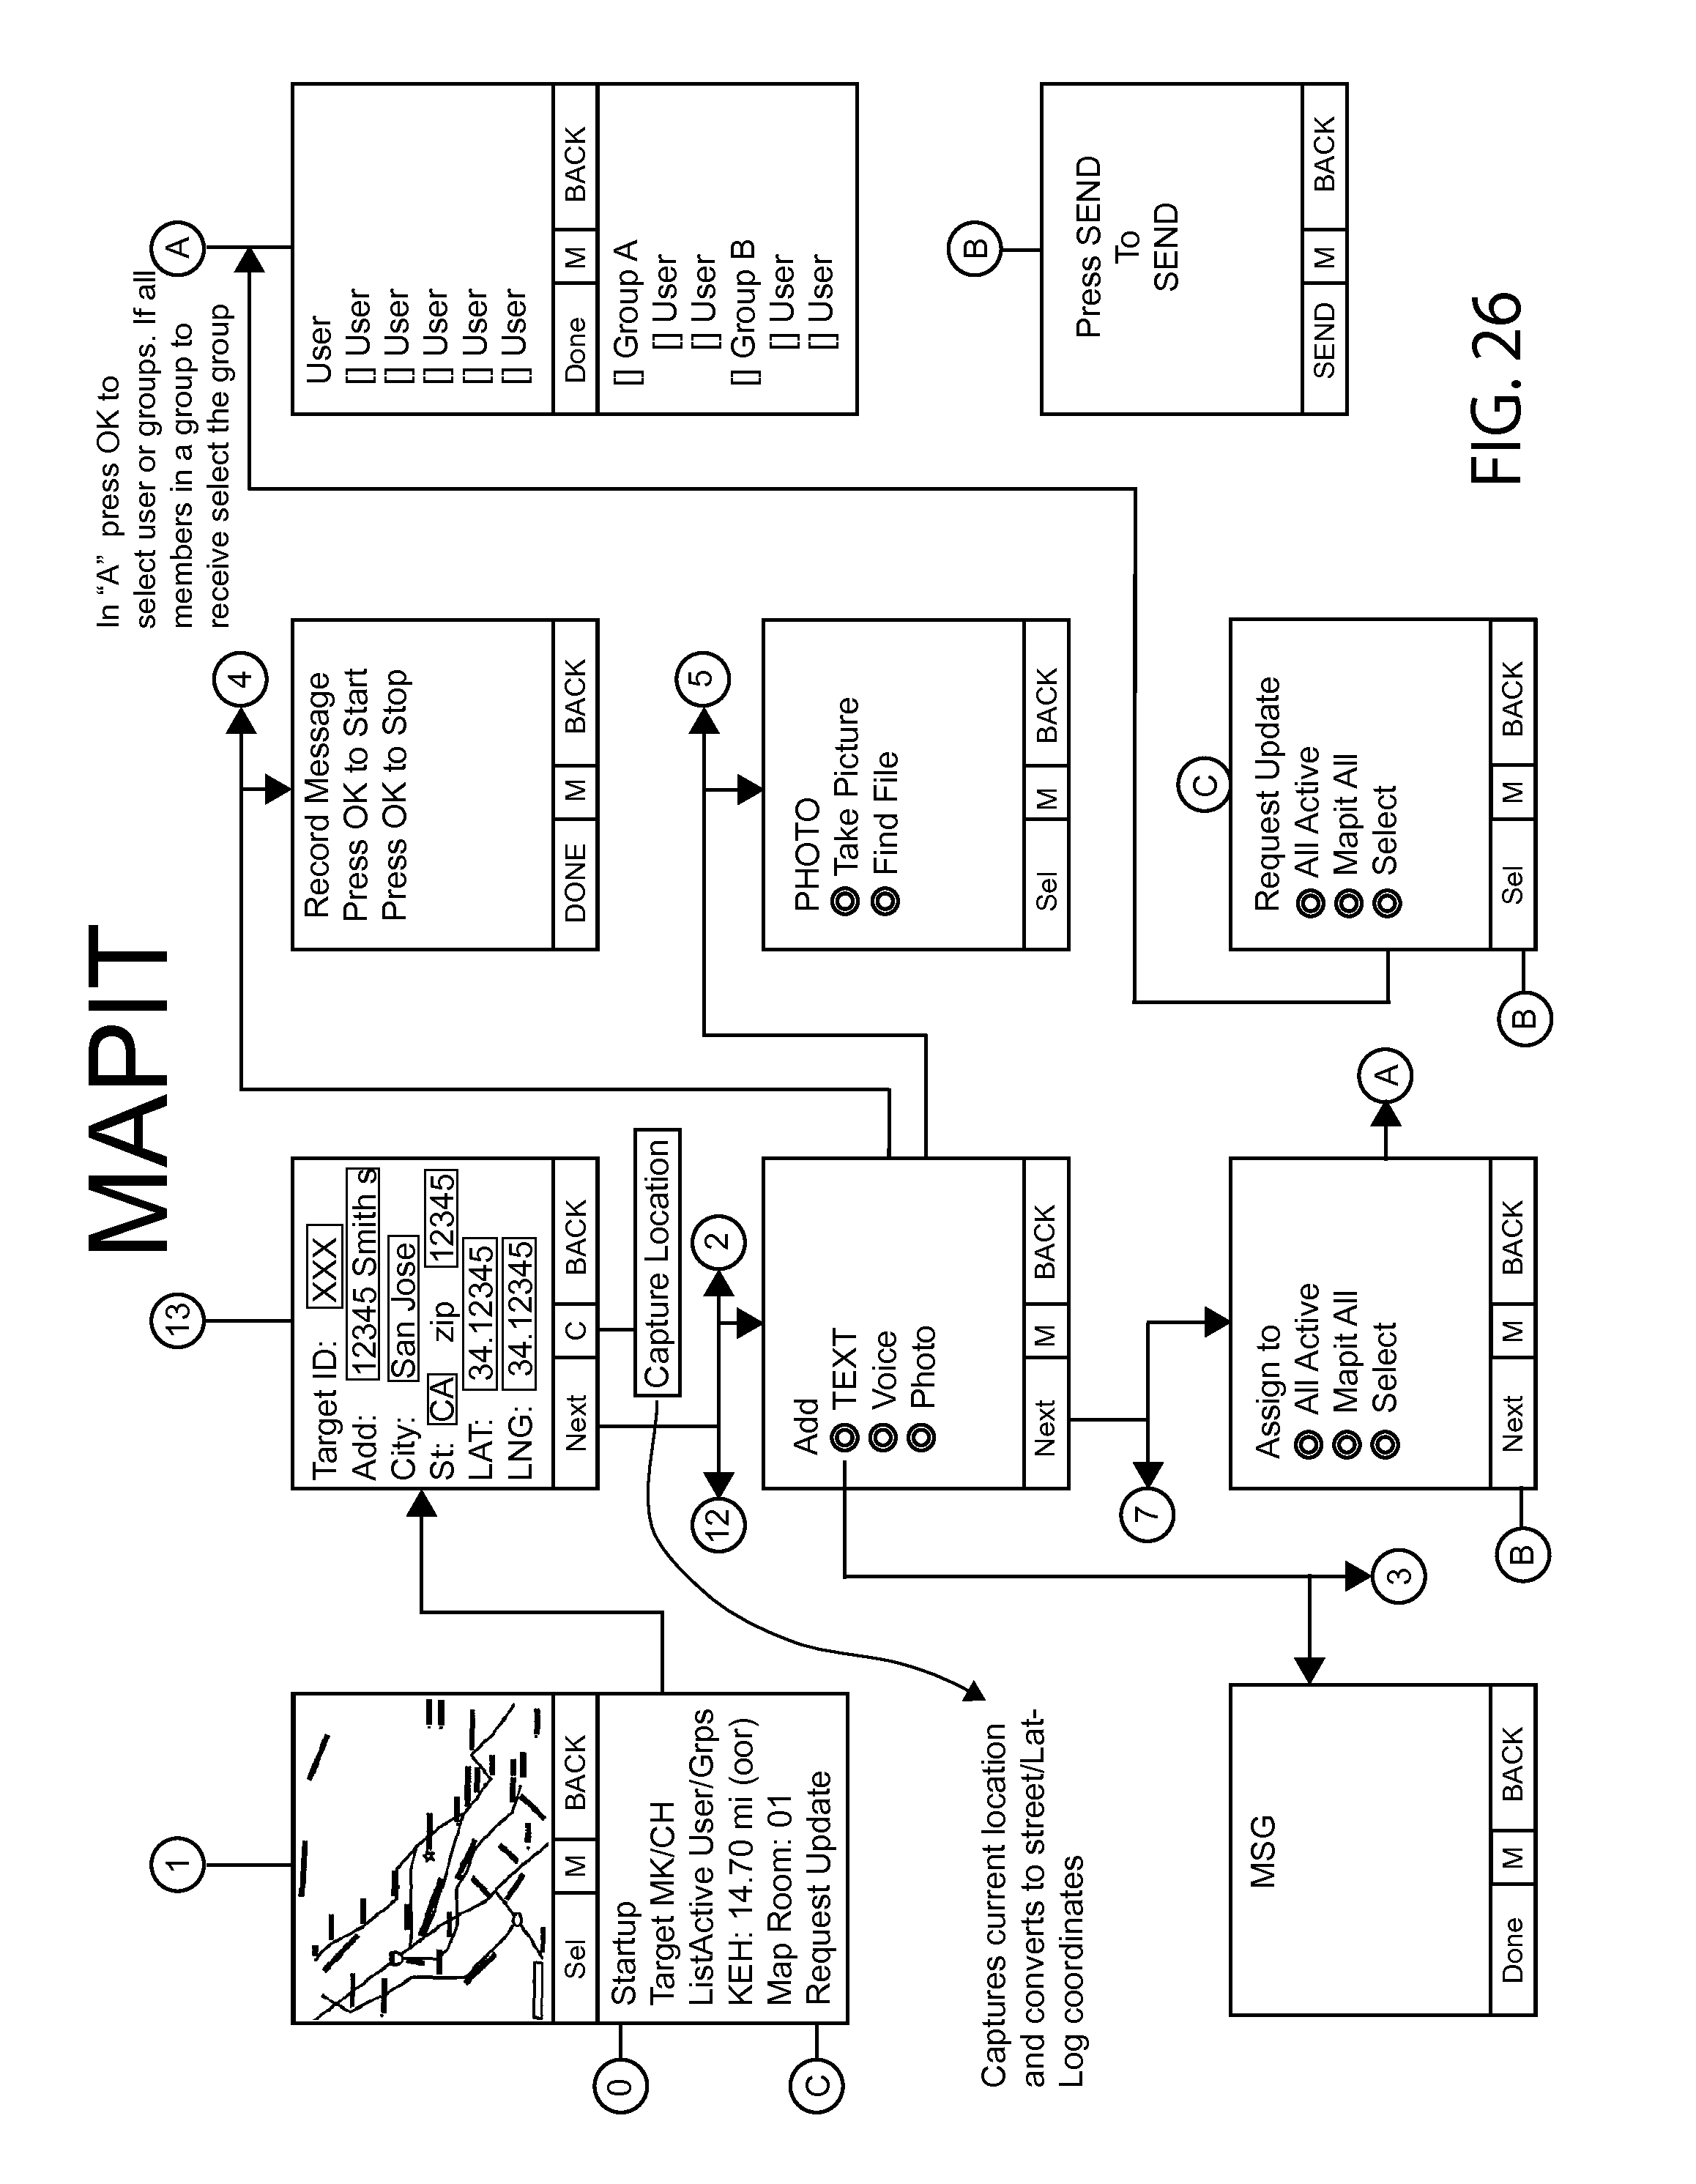 Us8750898b2 Methods And Systems For Annotating Target Locations Besides Mini Split System Wiring Diagram Also Chamberlain Garage Door Google Patents